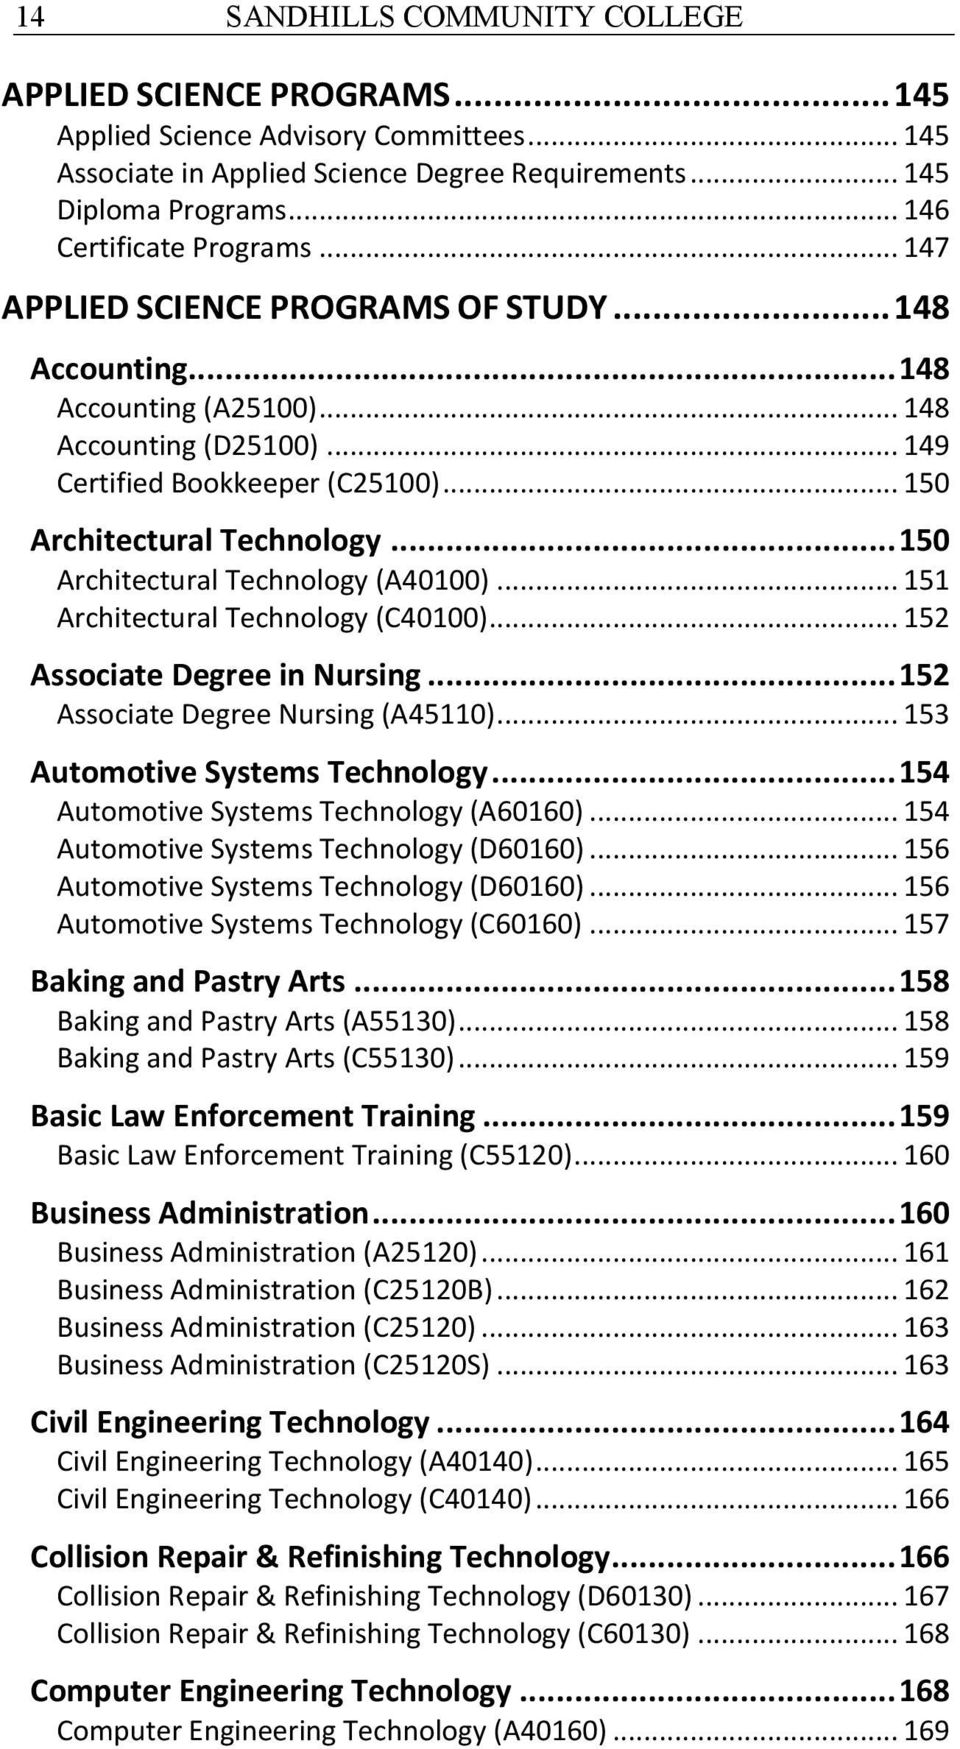 .. 150 Architectural Technology... 150 Architectural Technology (A40100)... 151 Architectural Technology (C40100)... 152 Associate Degree in Nursing... 152 Associate Degree Nursing (A45110).